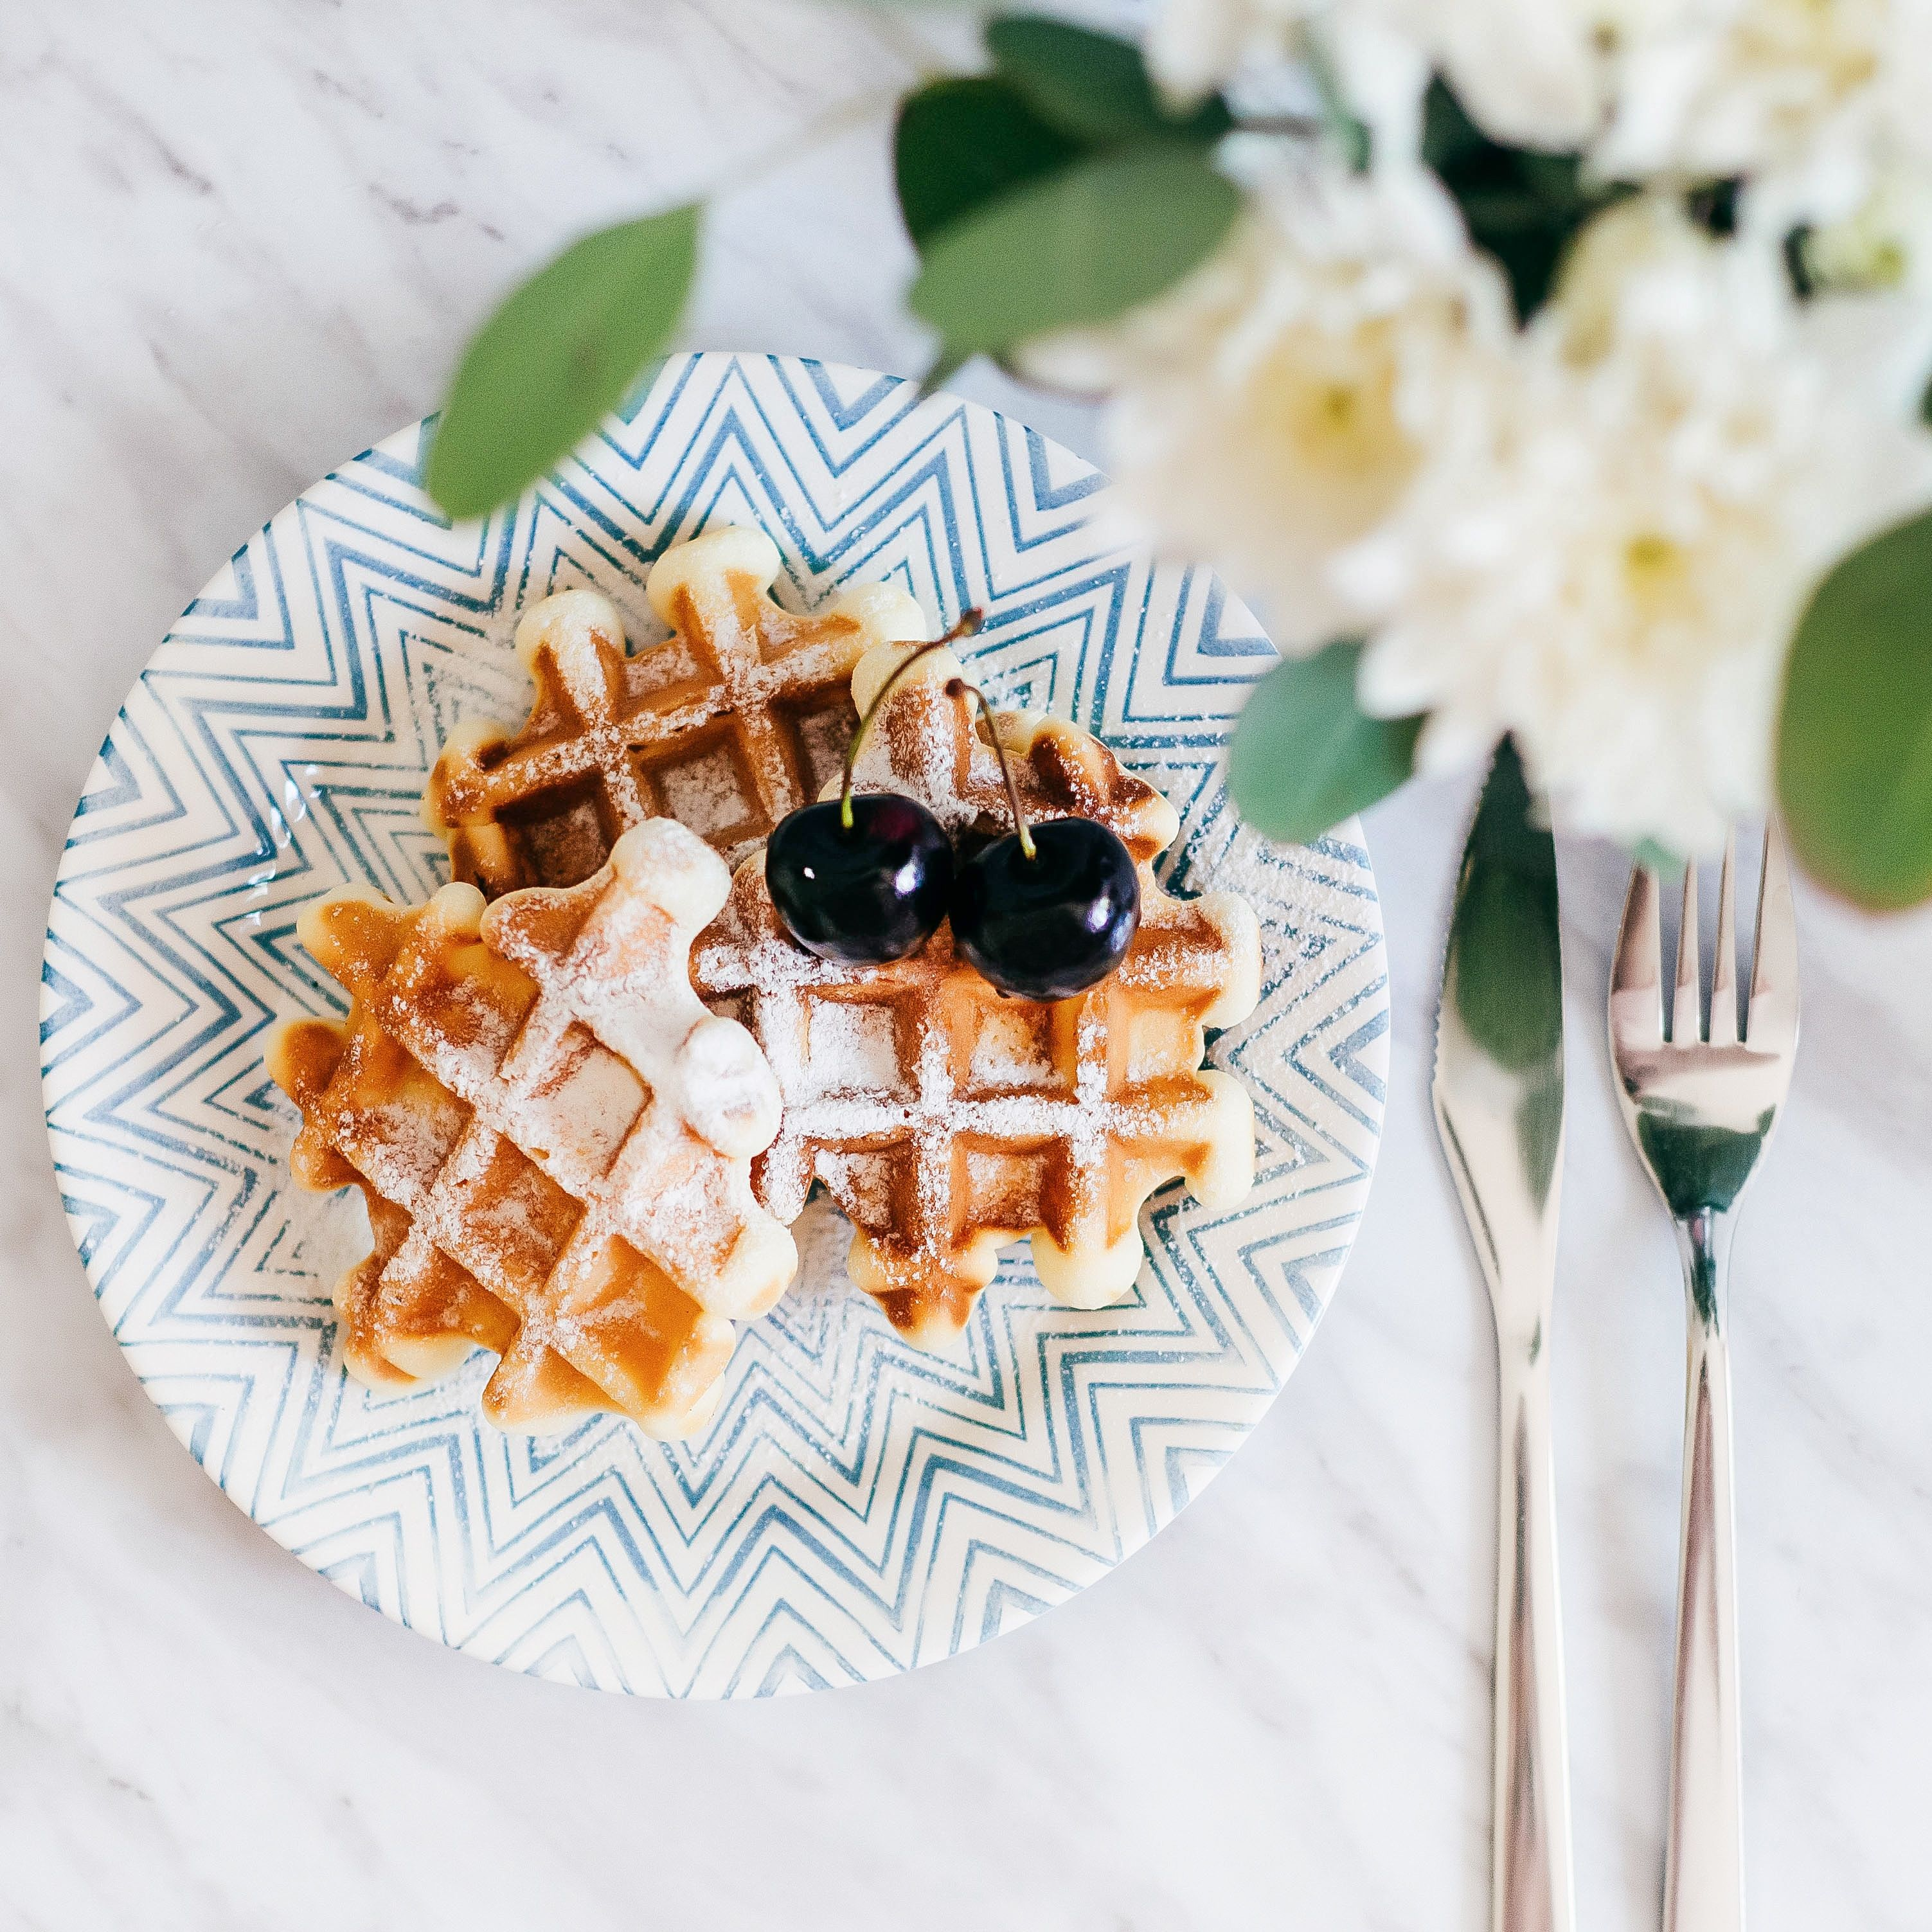 Dont you just love waffles foodaddict cheatday